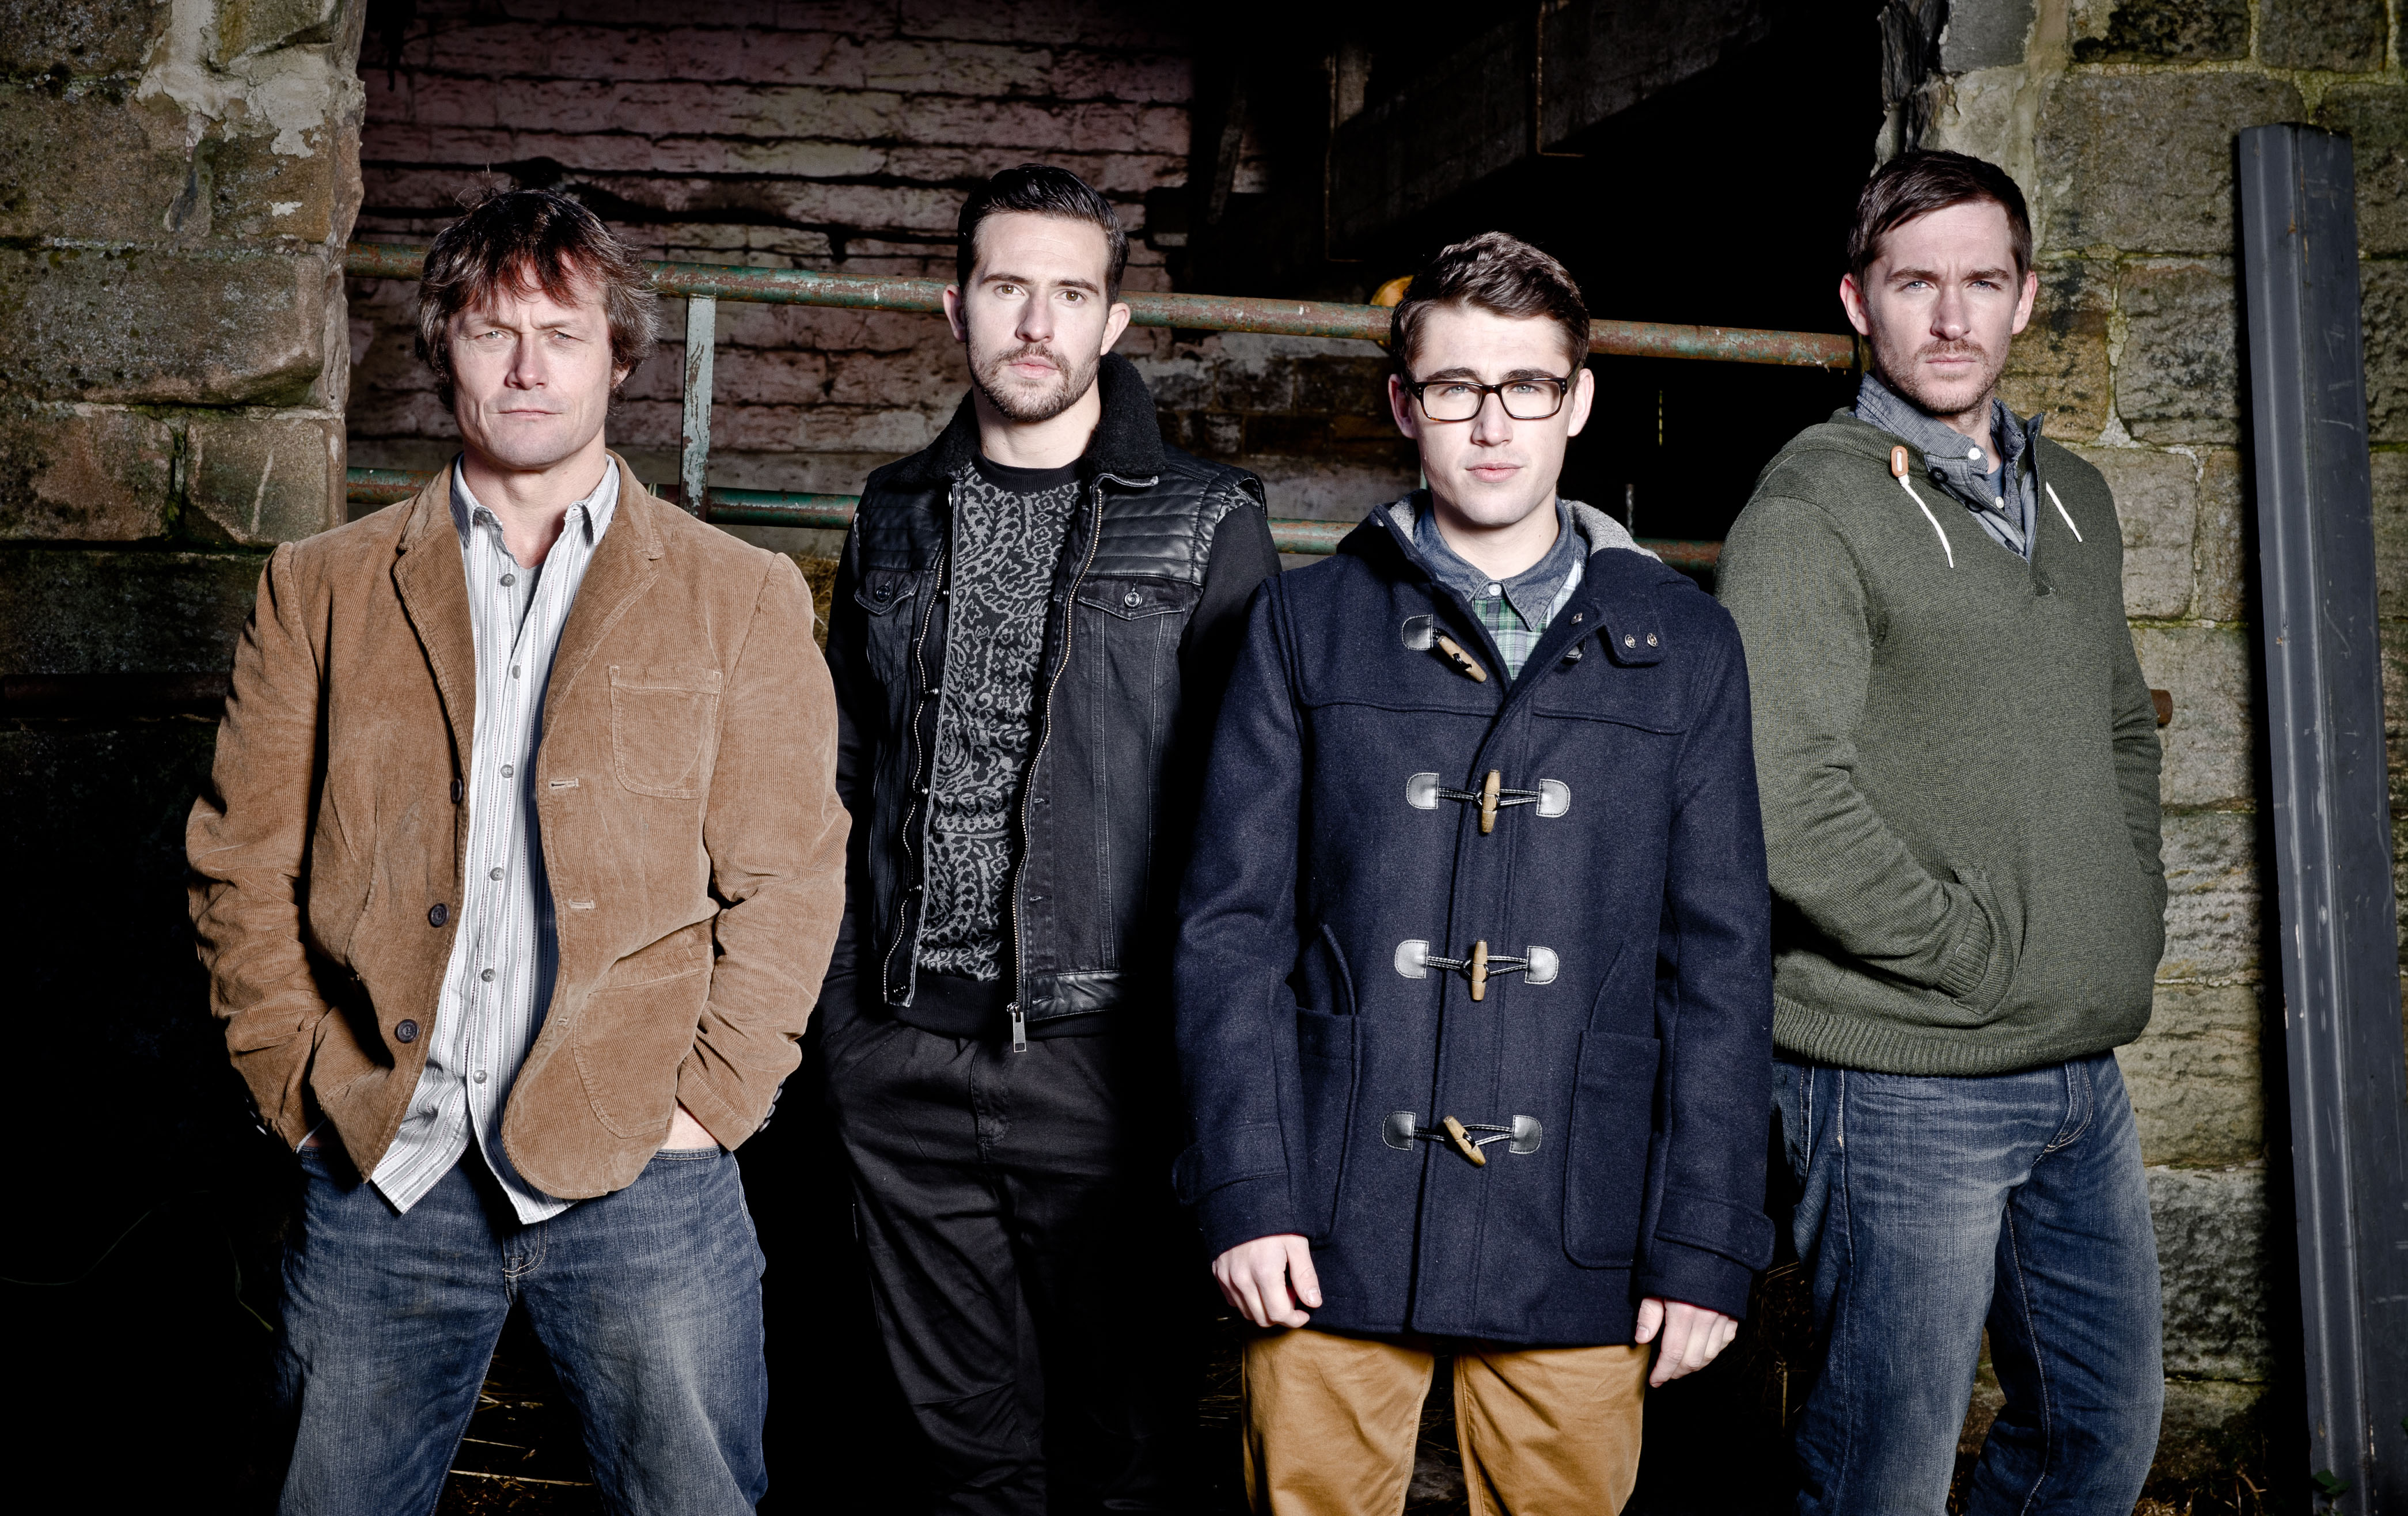 Editorial use only Mandatory Credit: Photo by ITV/Shutterstock (3749812t) The Bartons - James Barton [Bill Ward] Ross Barton [Michael Parr] Finn [Joe Gill] Peter [Anthony Quinlan] 'Emmerdale' The Barton Family - TV Programme. - 04 Nov 2013